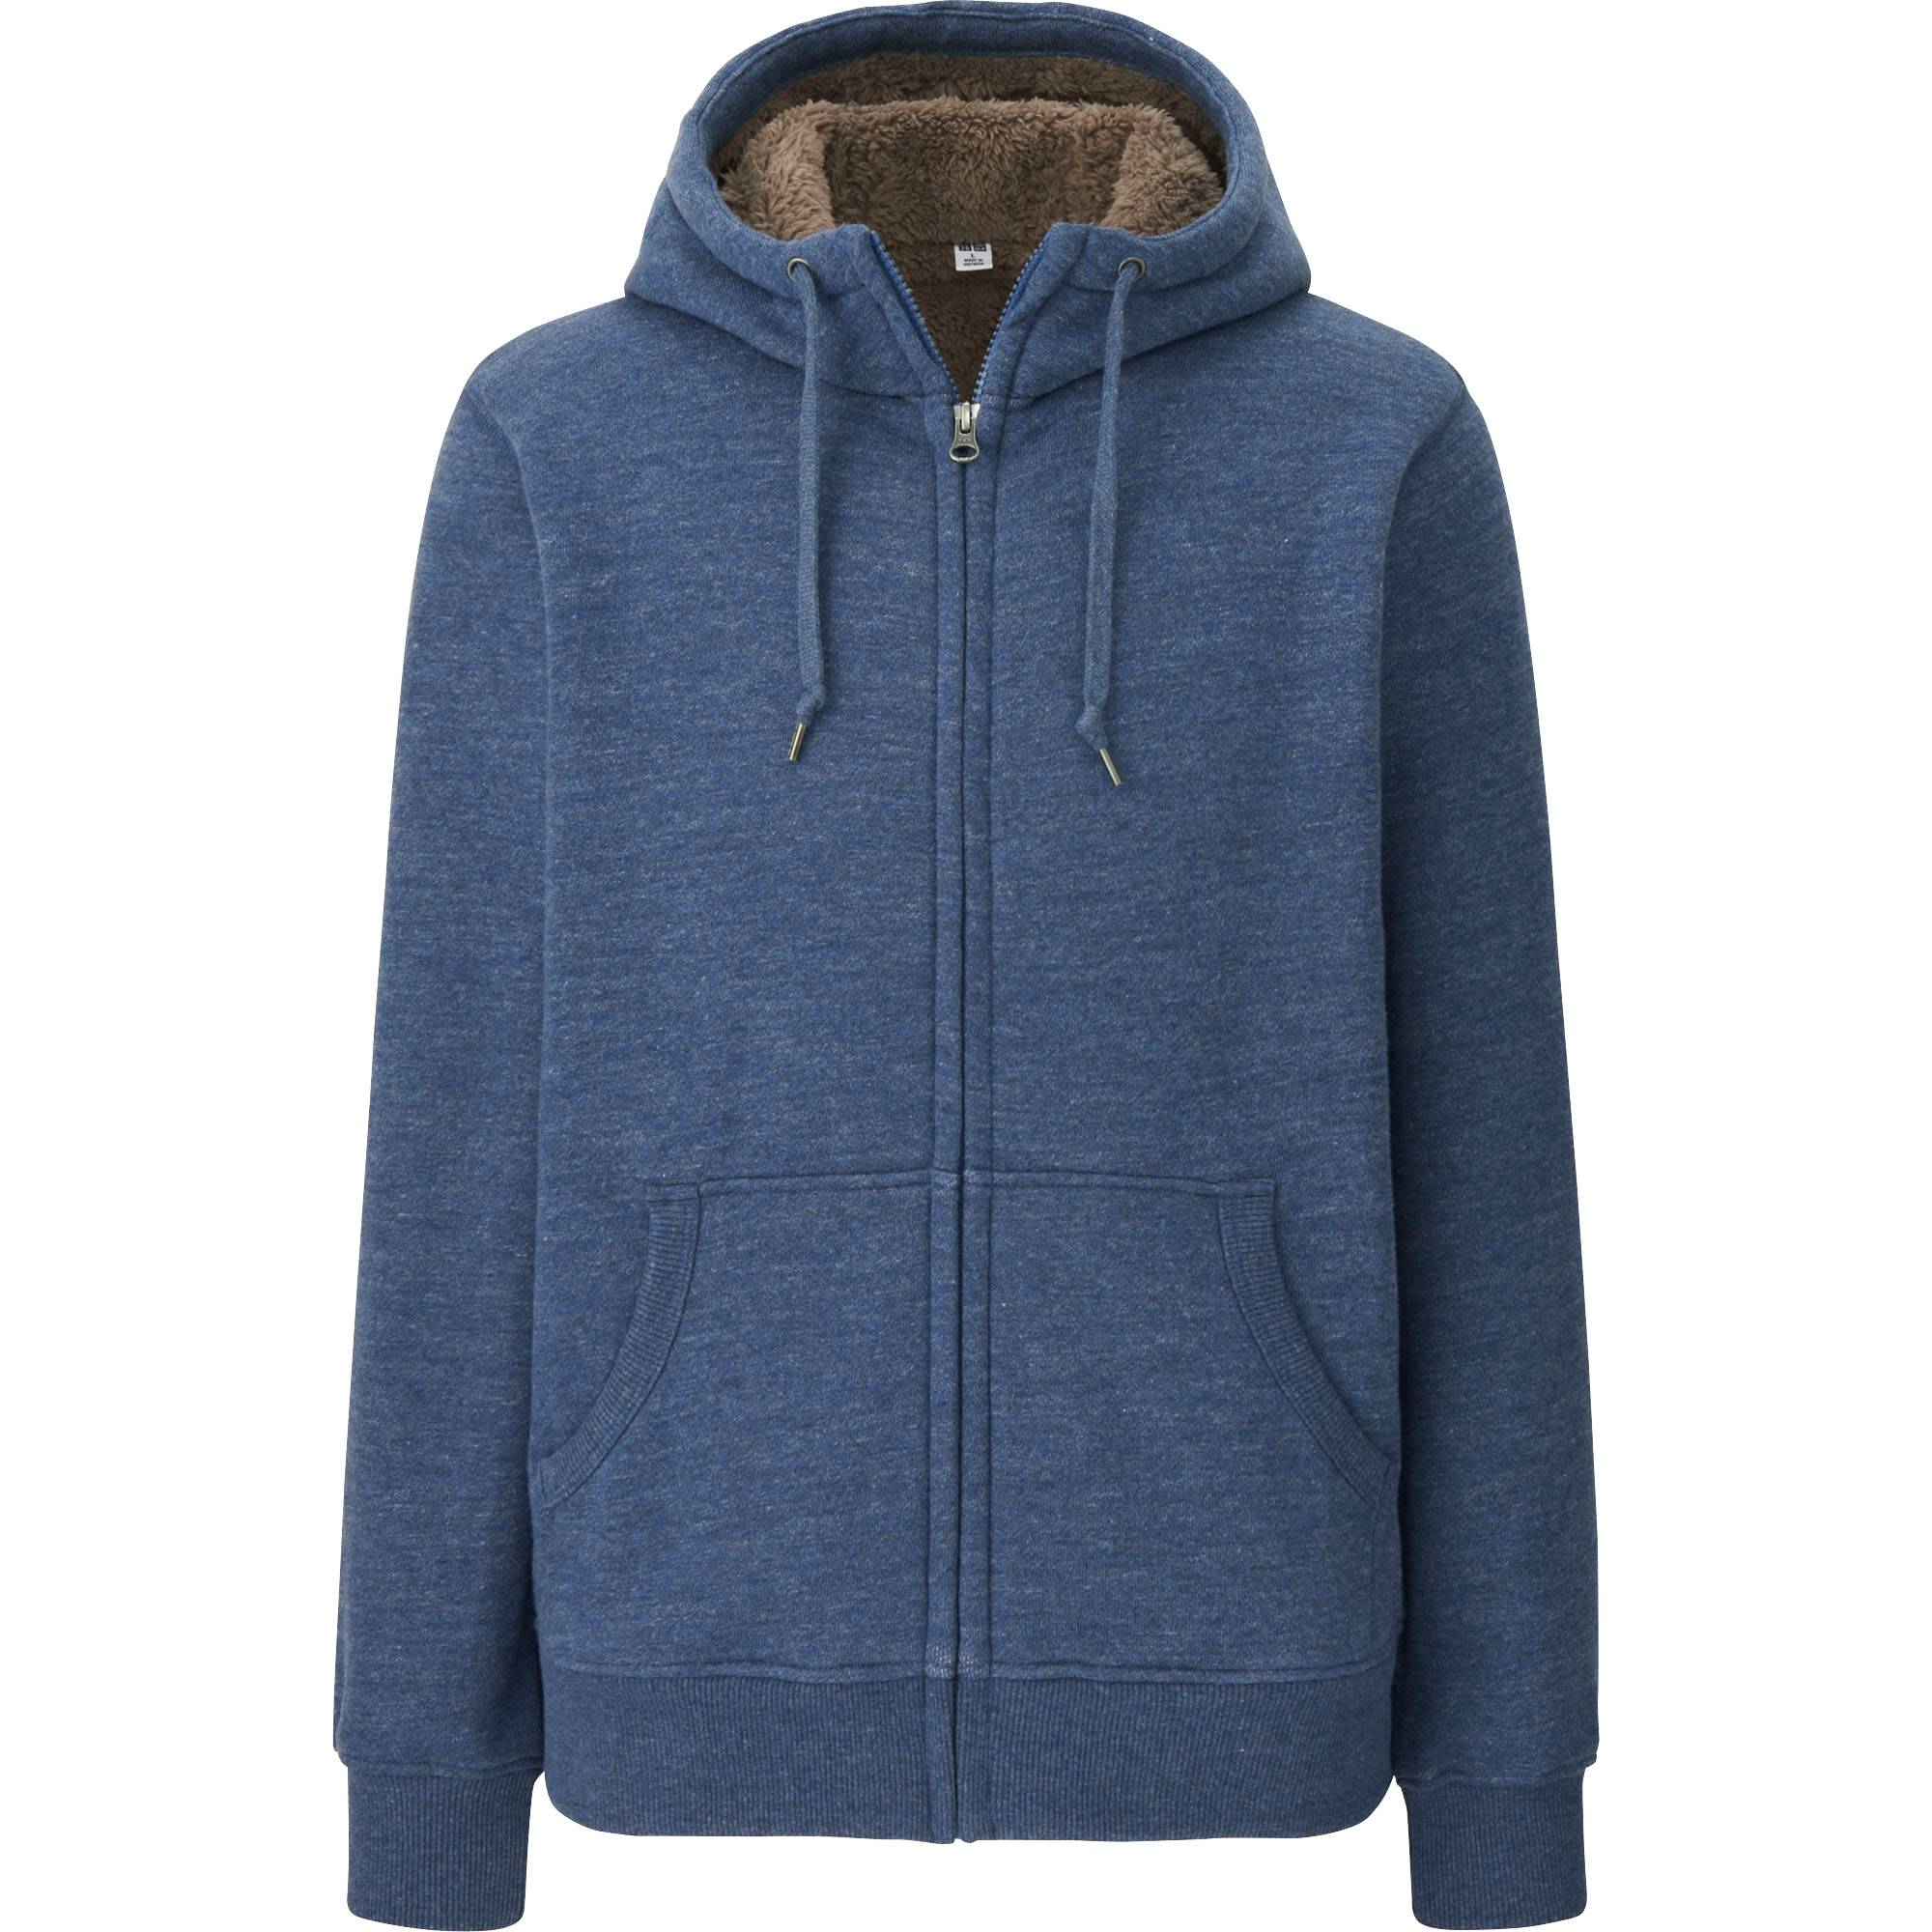 MEN PILE-LINED SWEAT LONG SLEEVE FULL-ZIP HOODIE | UNIQLO US